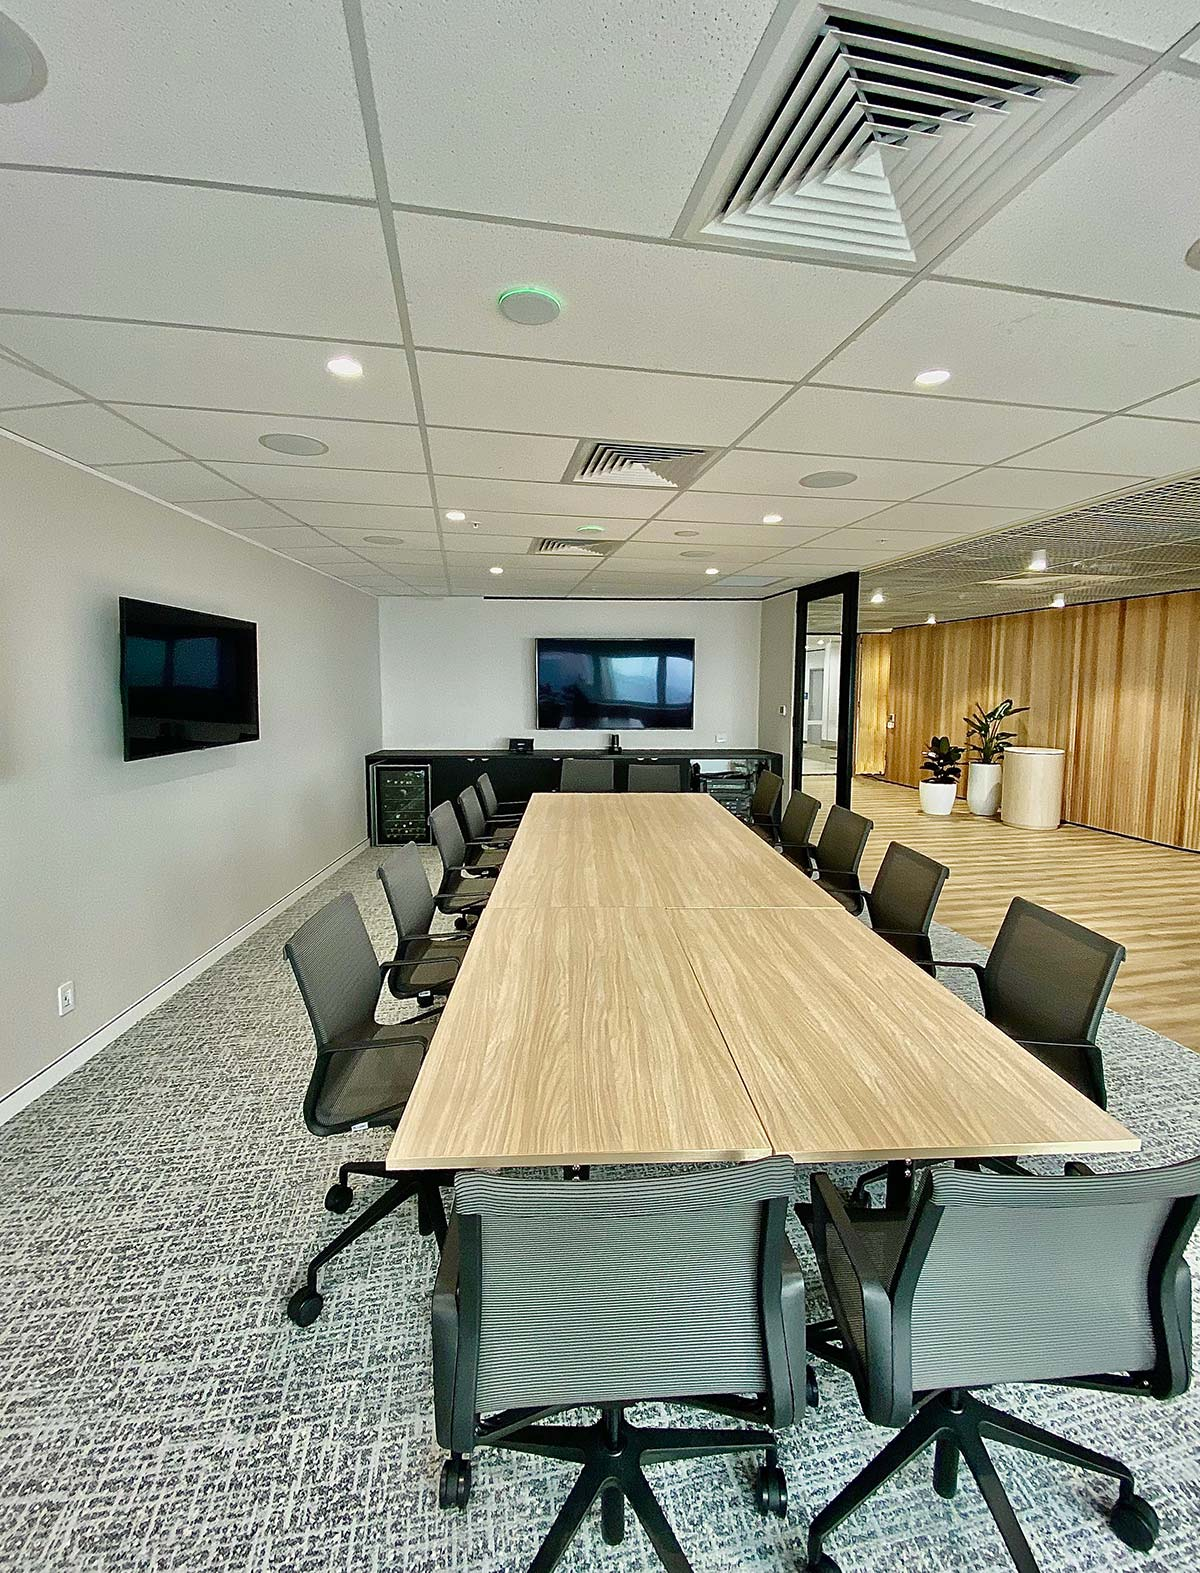 video conference boardroom with TV screens on wall